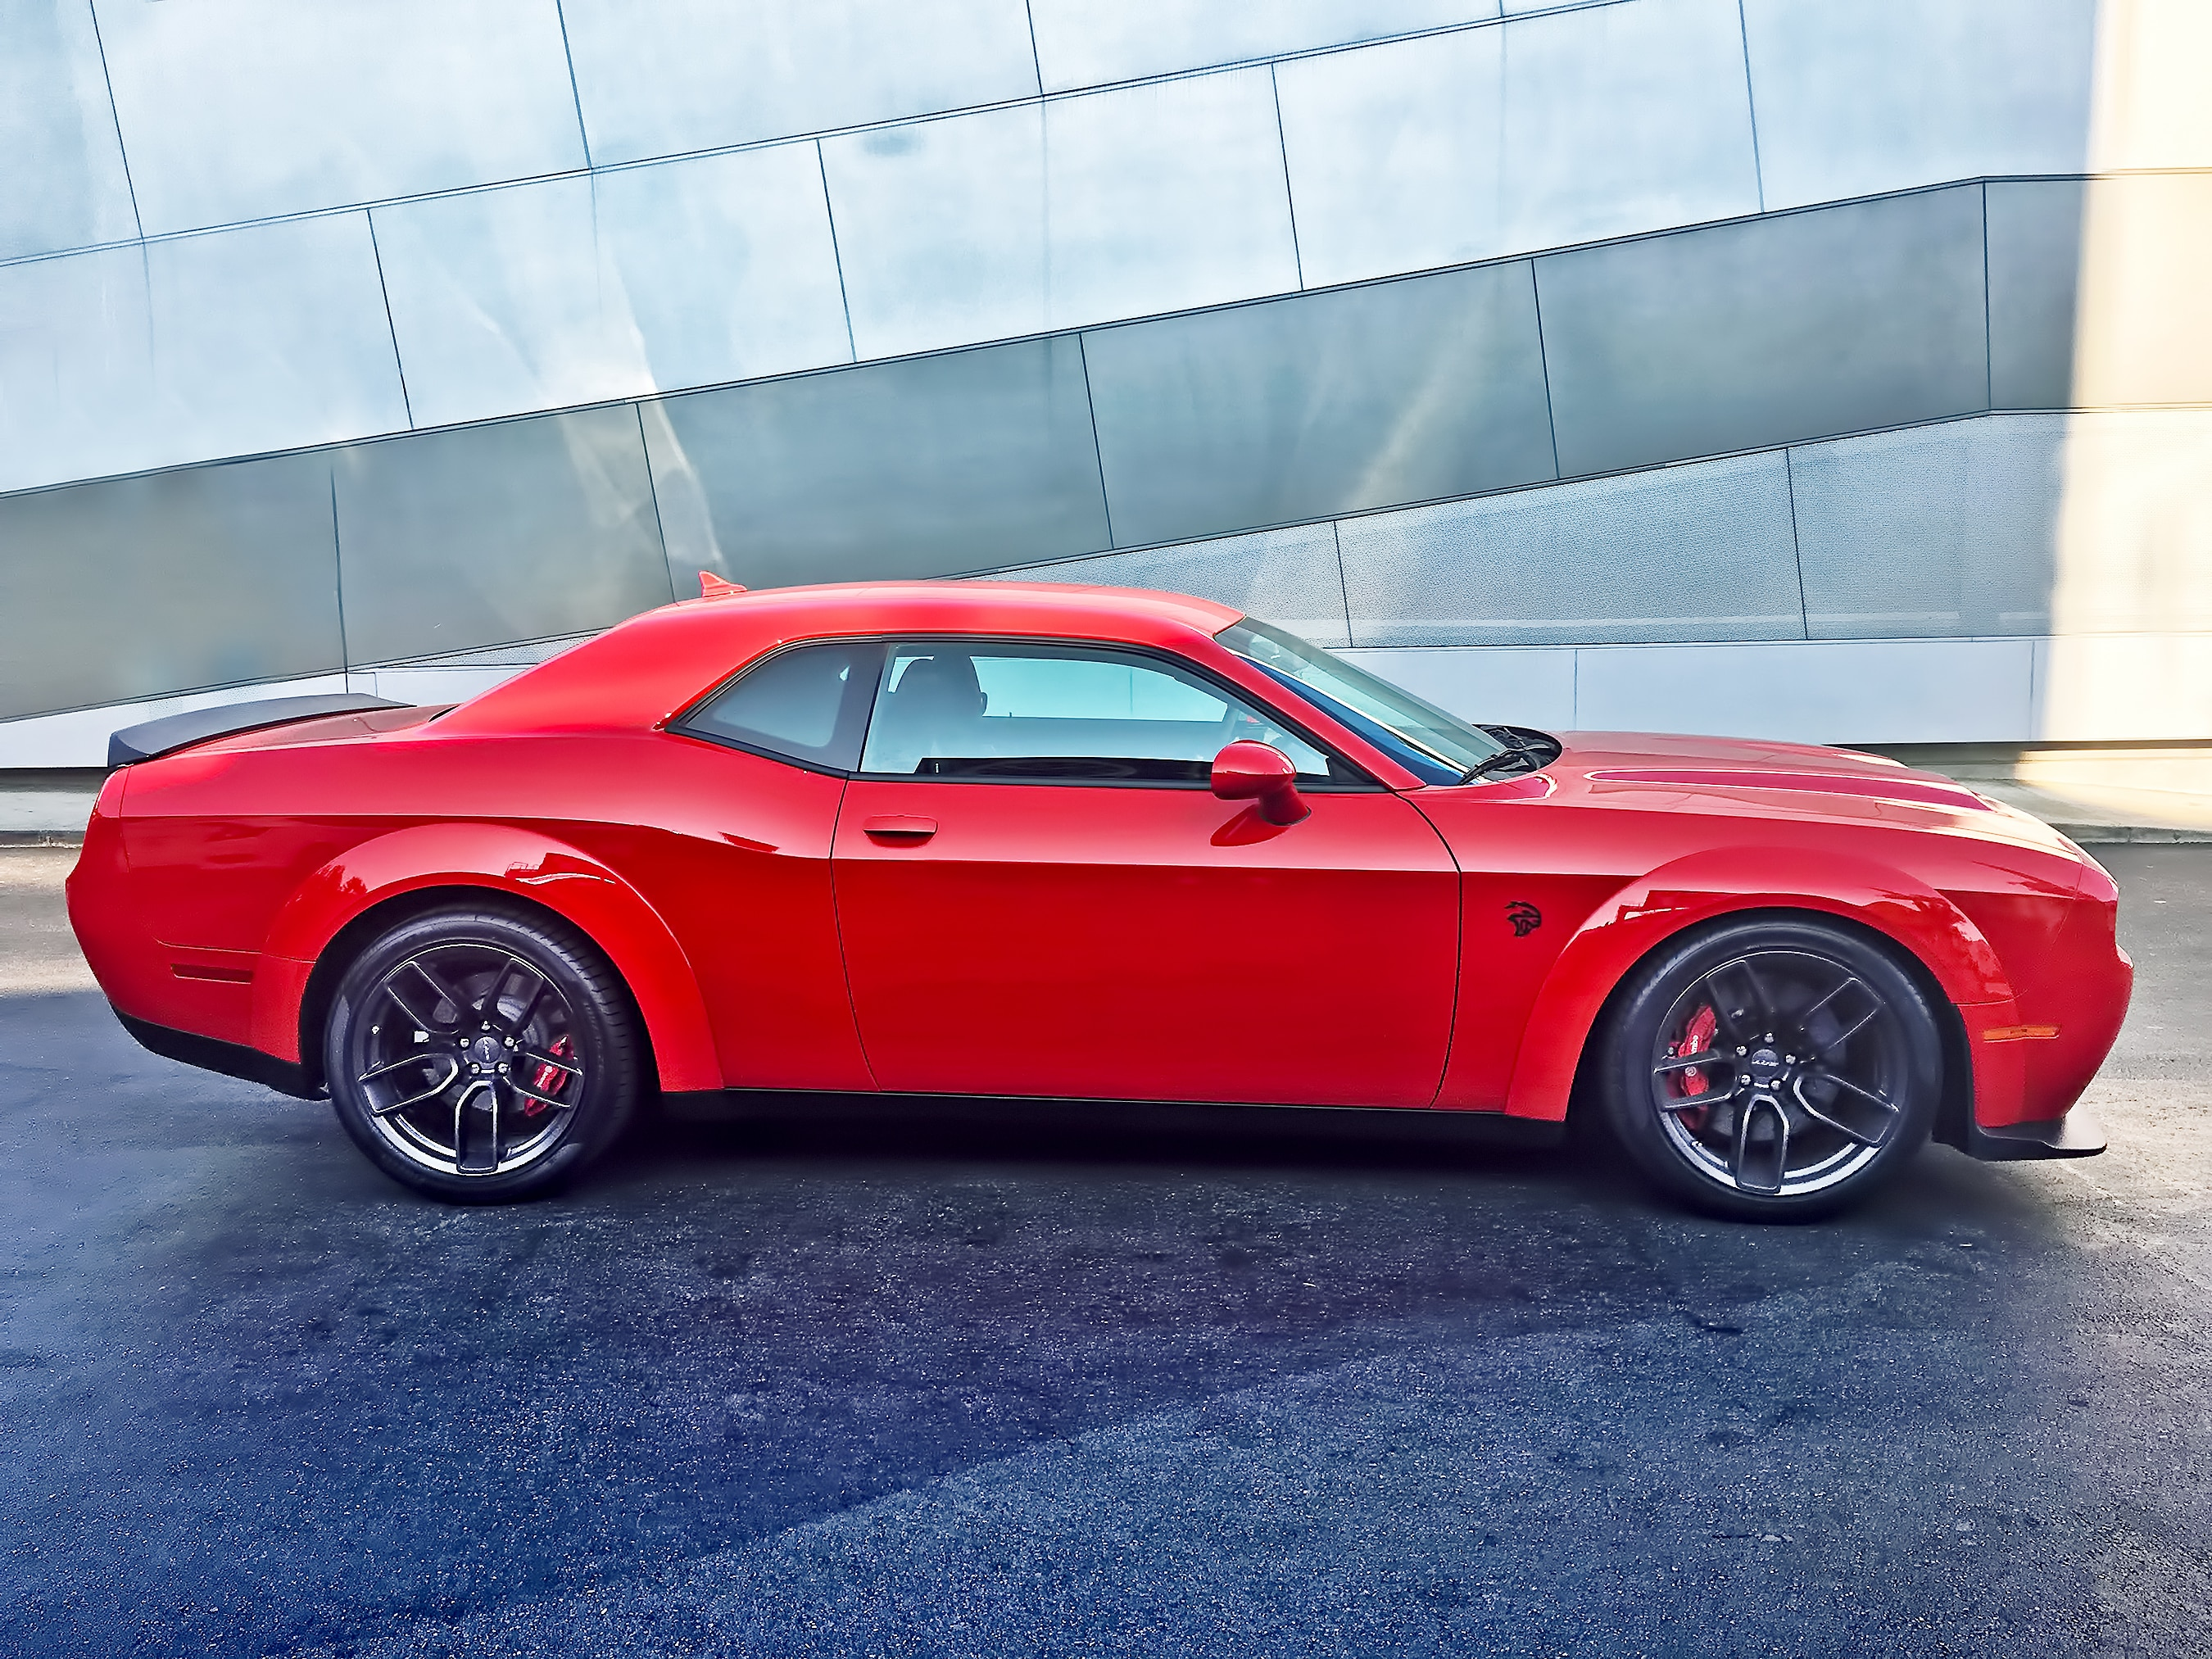 2019 Dodge Challenger Hellcat Redeye 1 Week With The 797